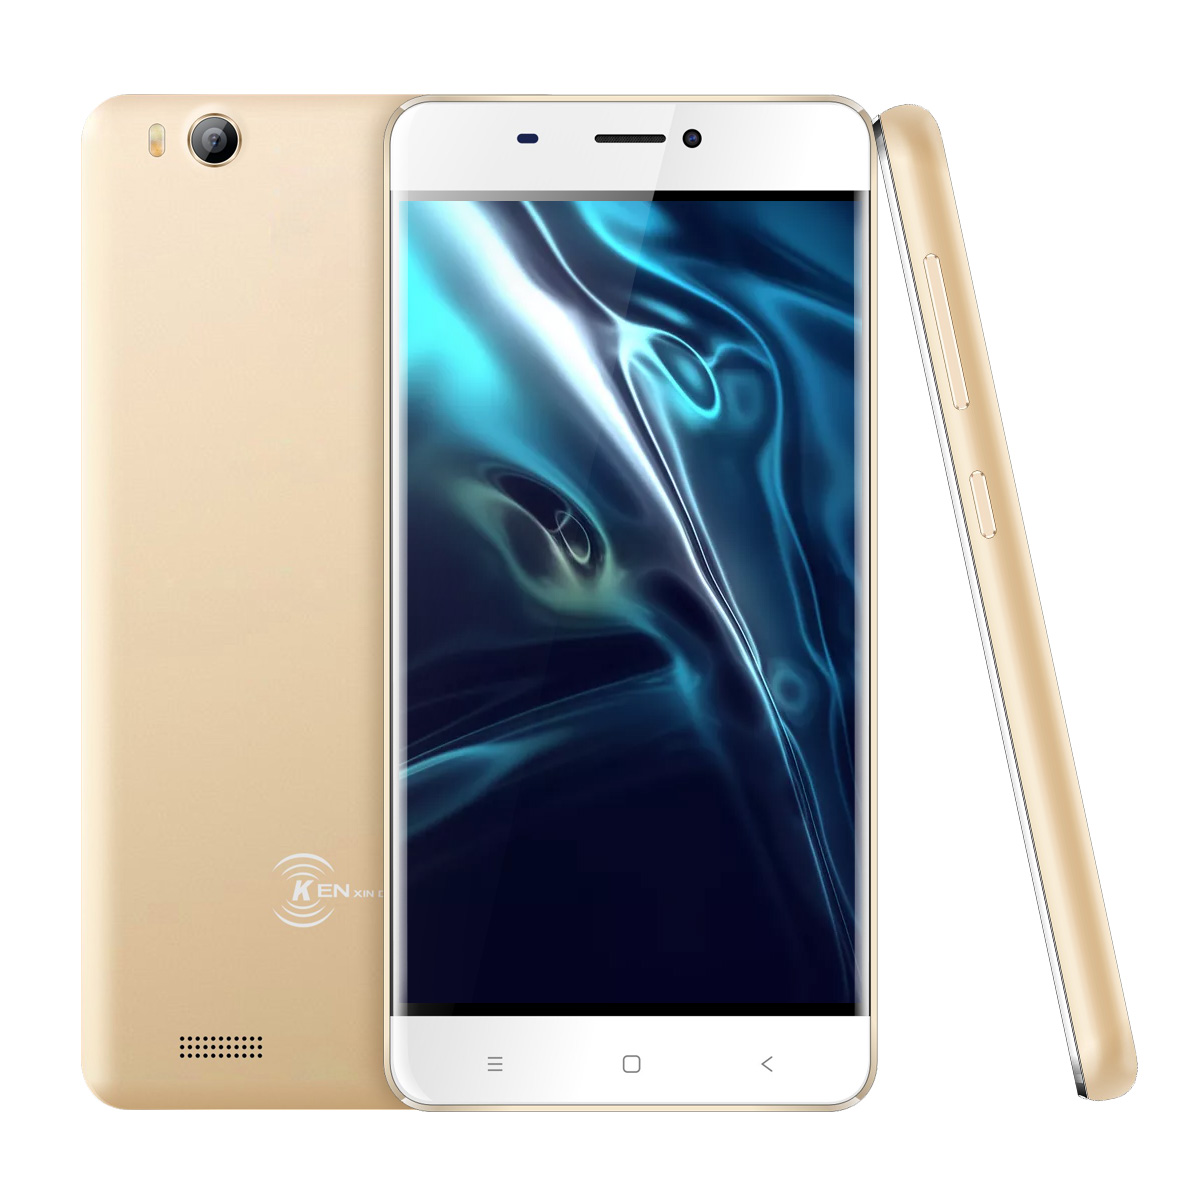 Wholesale V6 3G Smartphone - Android 6.0 OS, Quad Core CPU4.5-Inch Display, 1700mAh Battery, Front & Rear Camera (Gold)